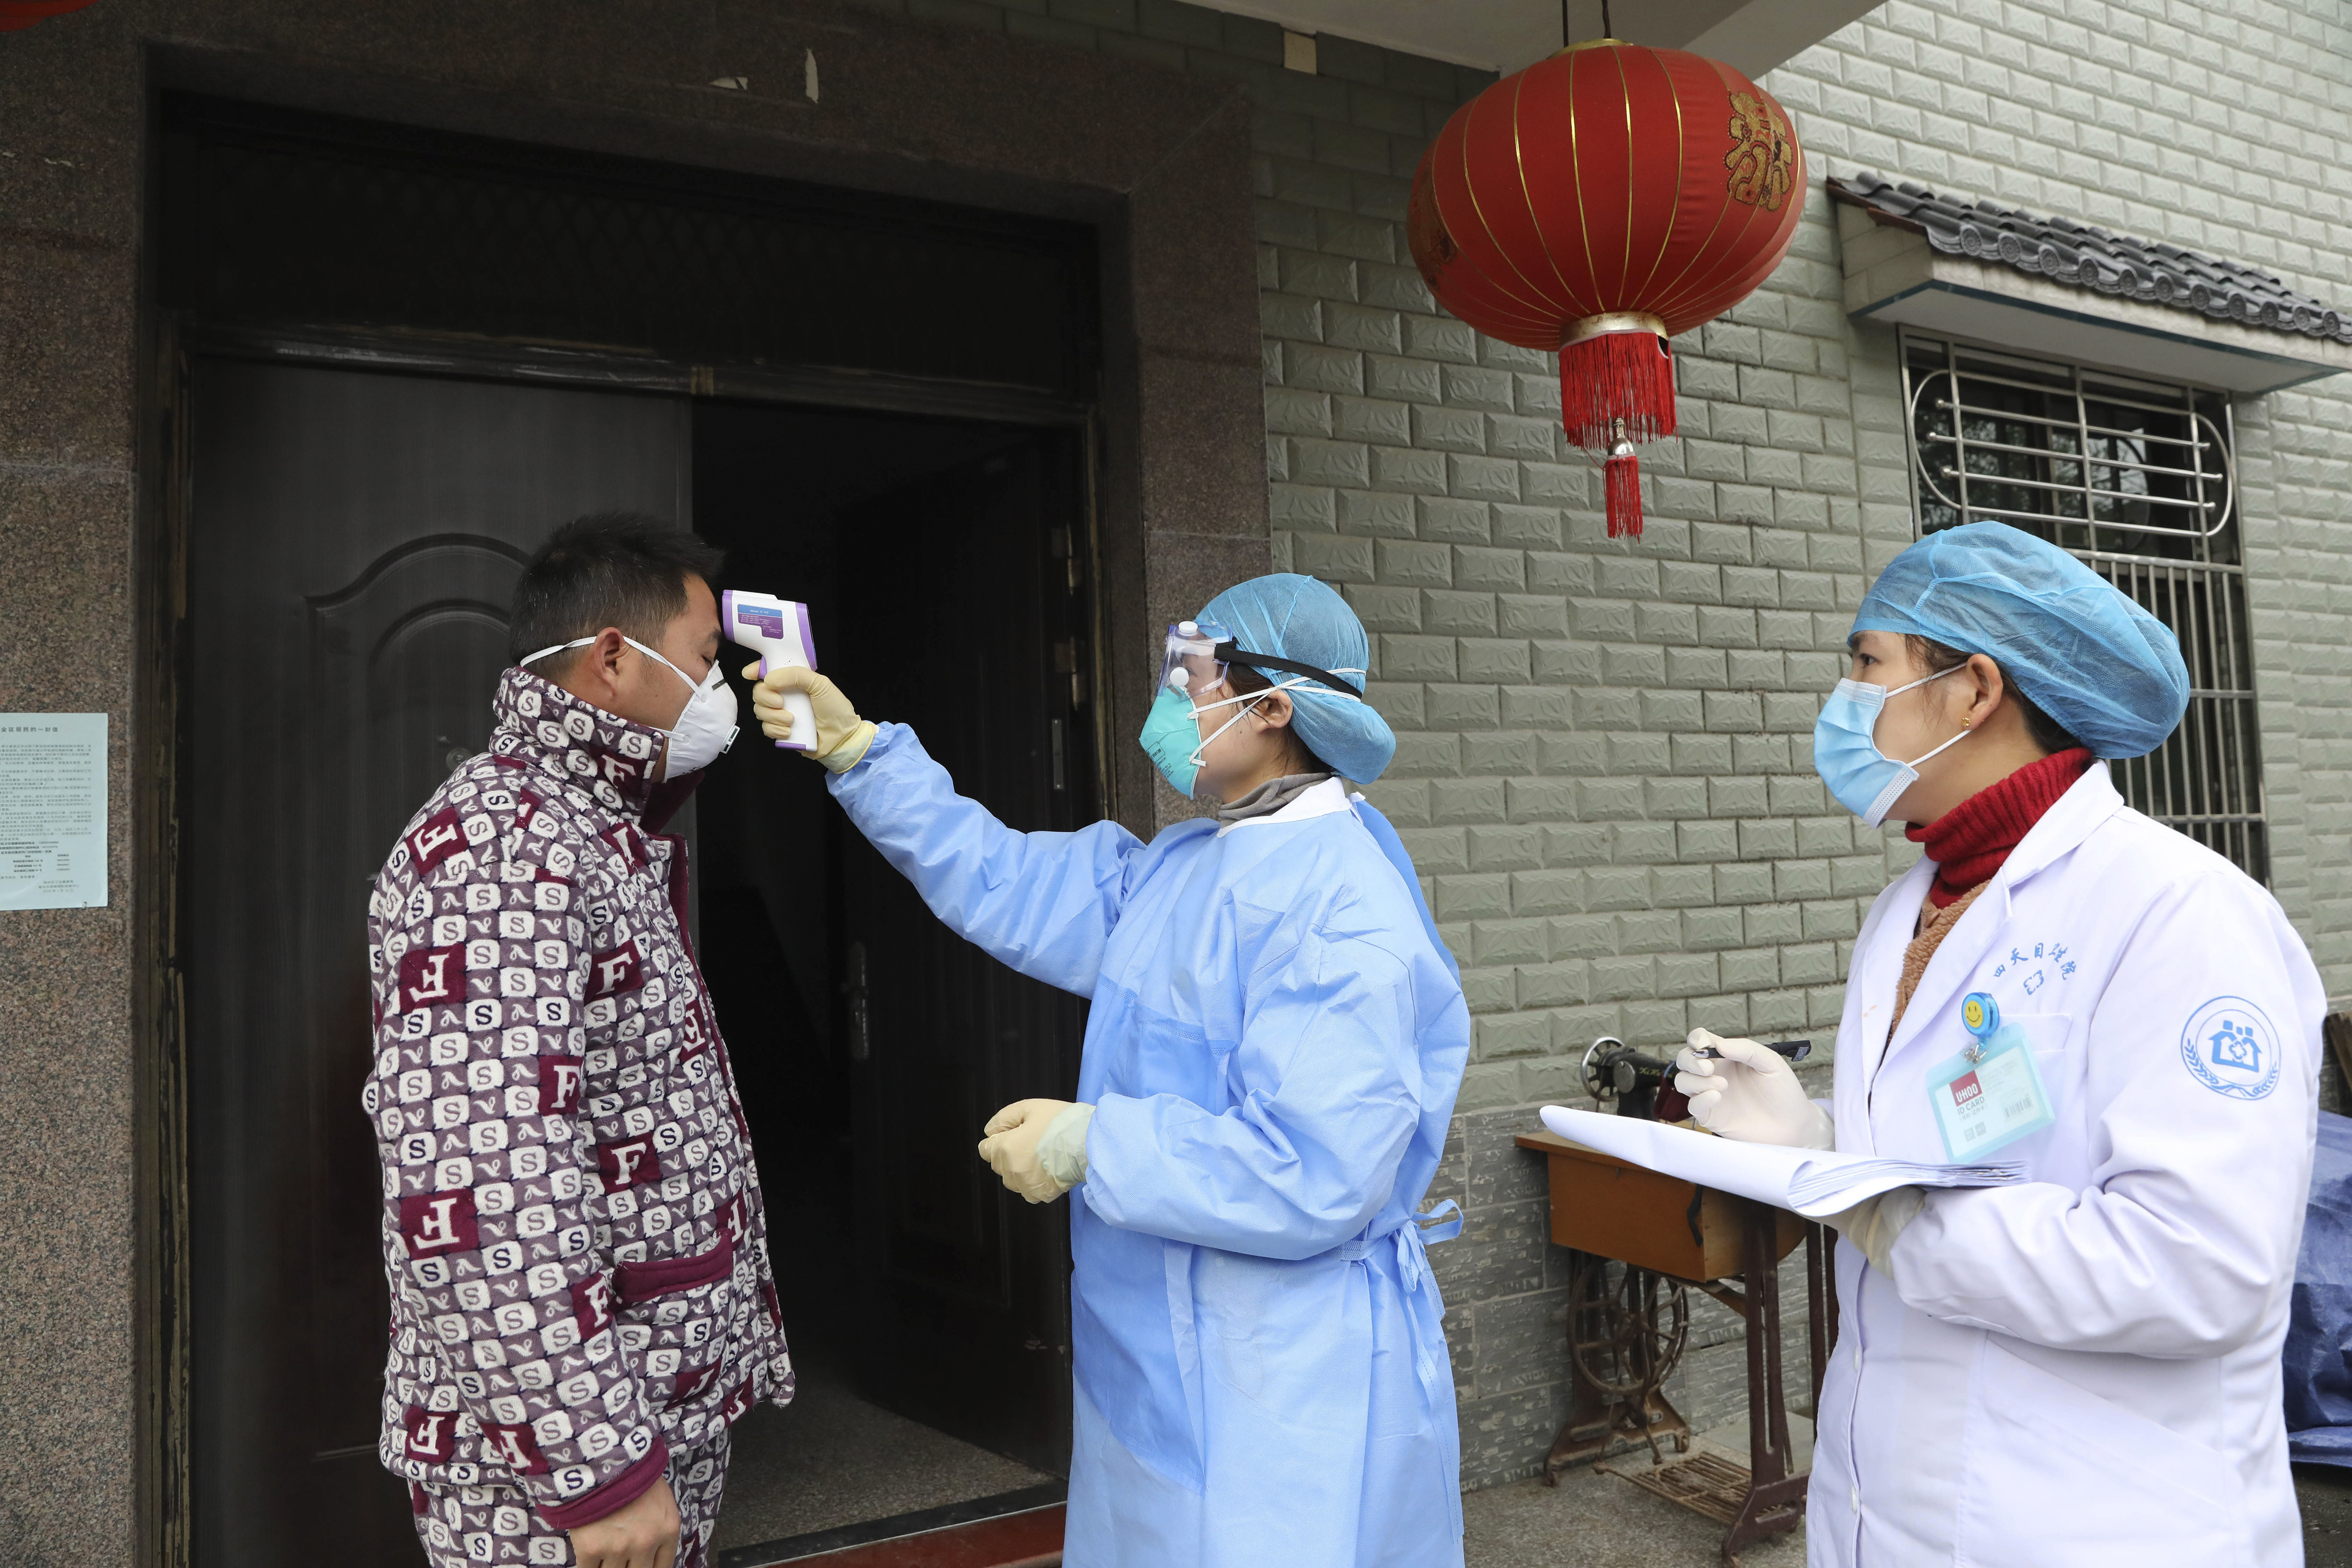 Coronavirus: Wuhan mayor willing to resign if it helps contain outbreak